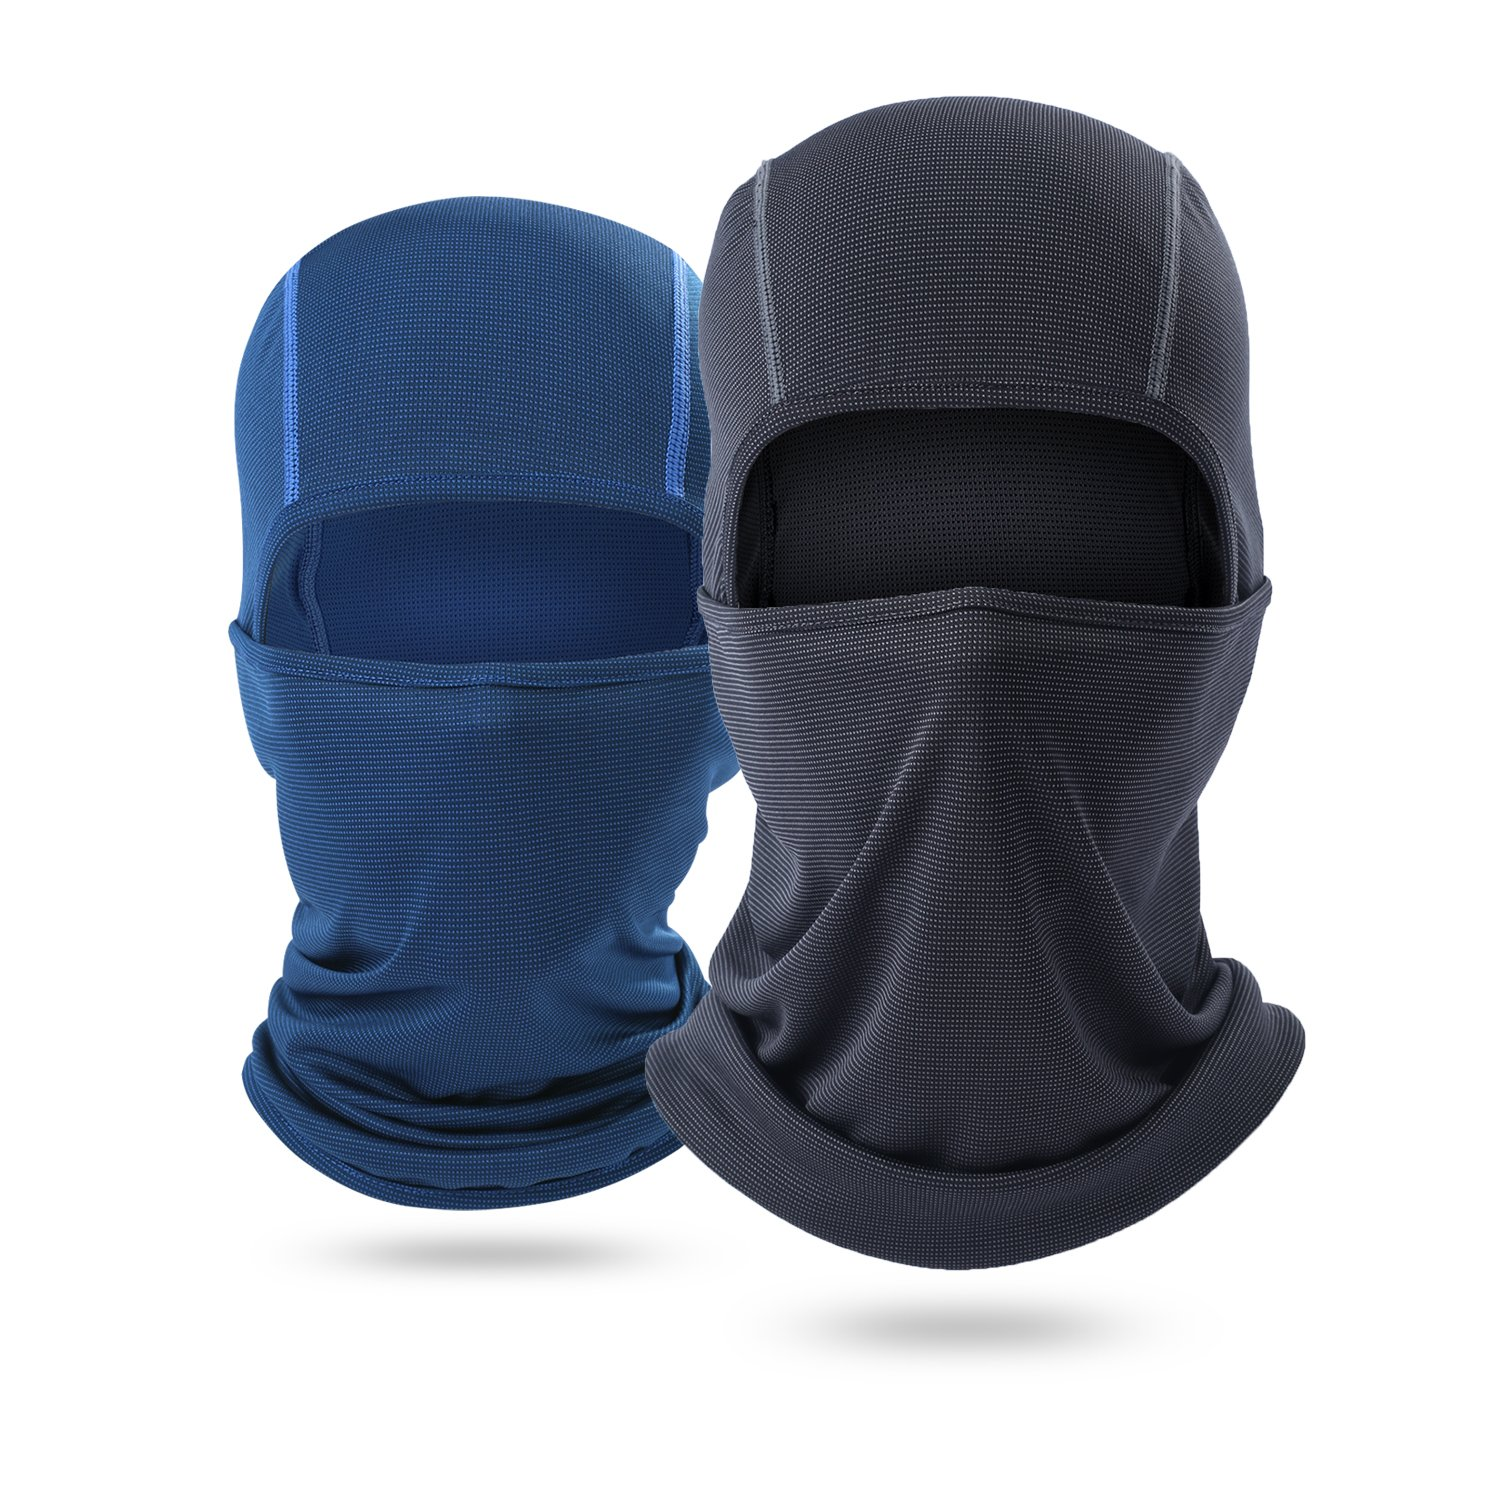 SUNMECI Balaclava Face Mask Sun Protection and Windproof Neck Cover for Motorcycle, Outdoors